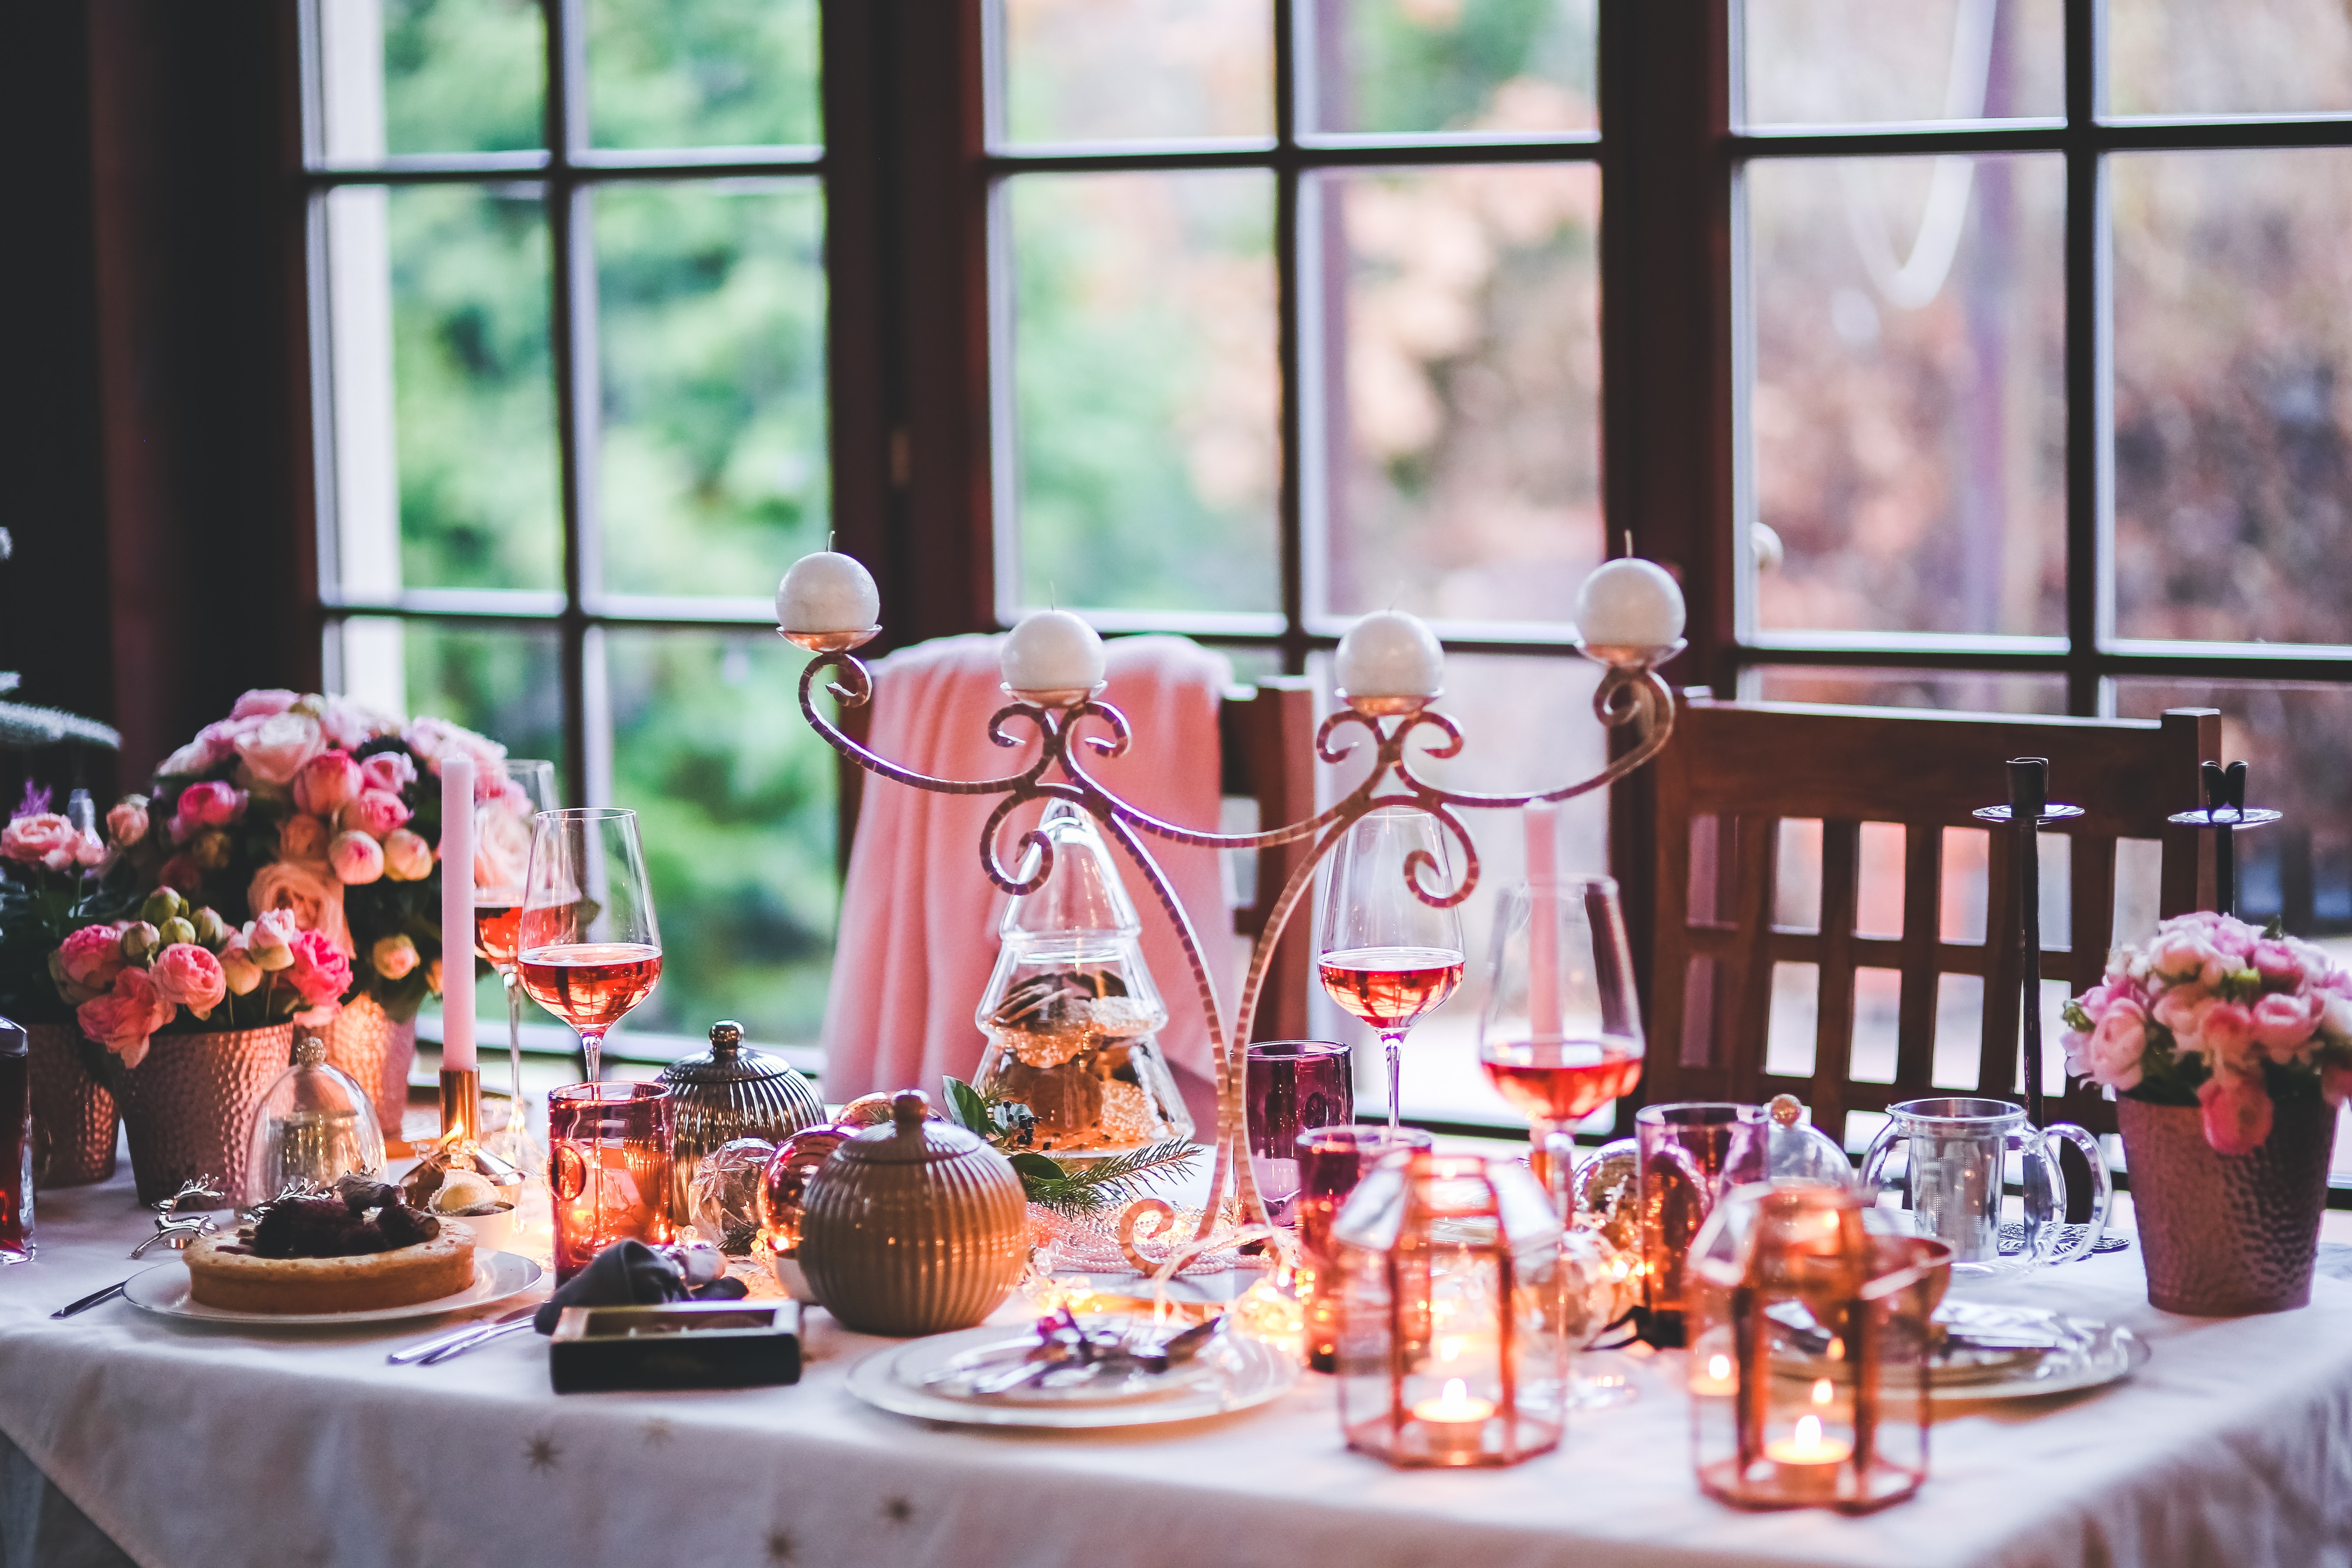 A pink and gold themed afternoon tea table.